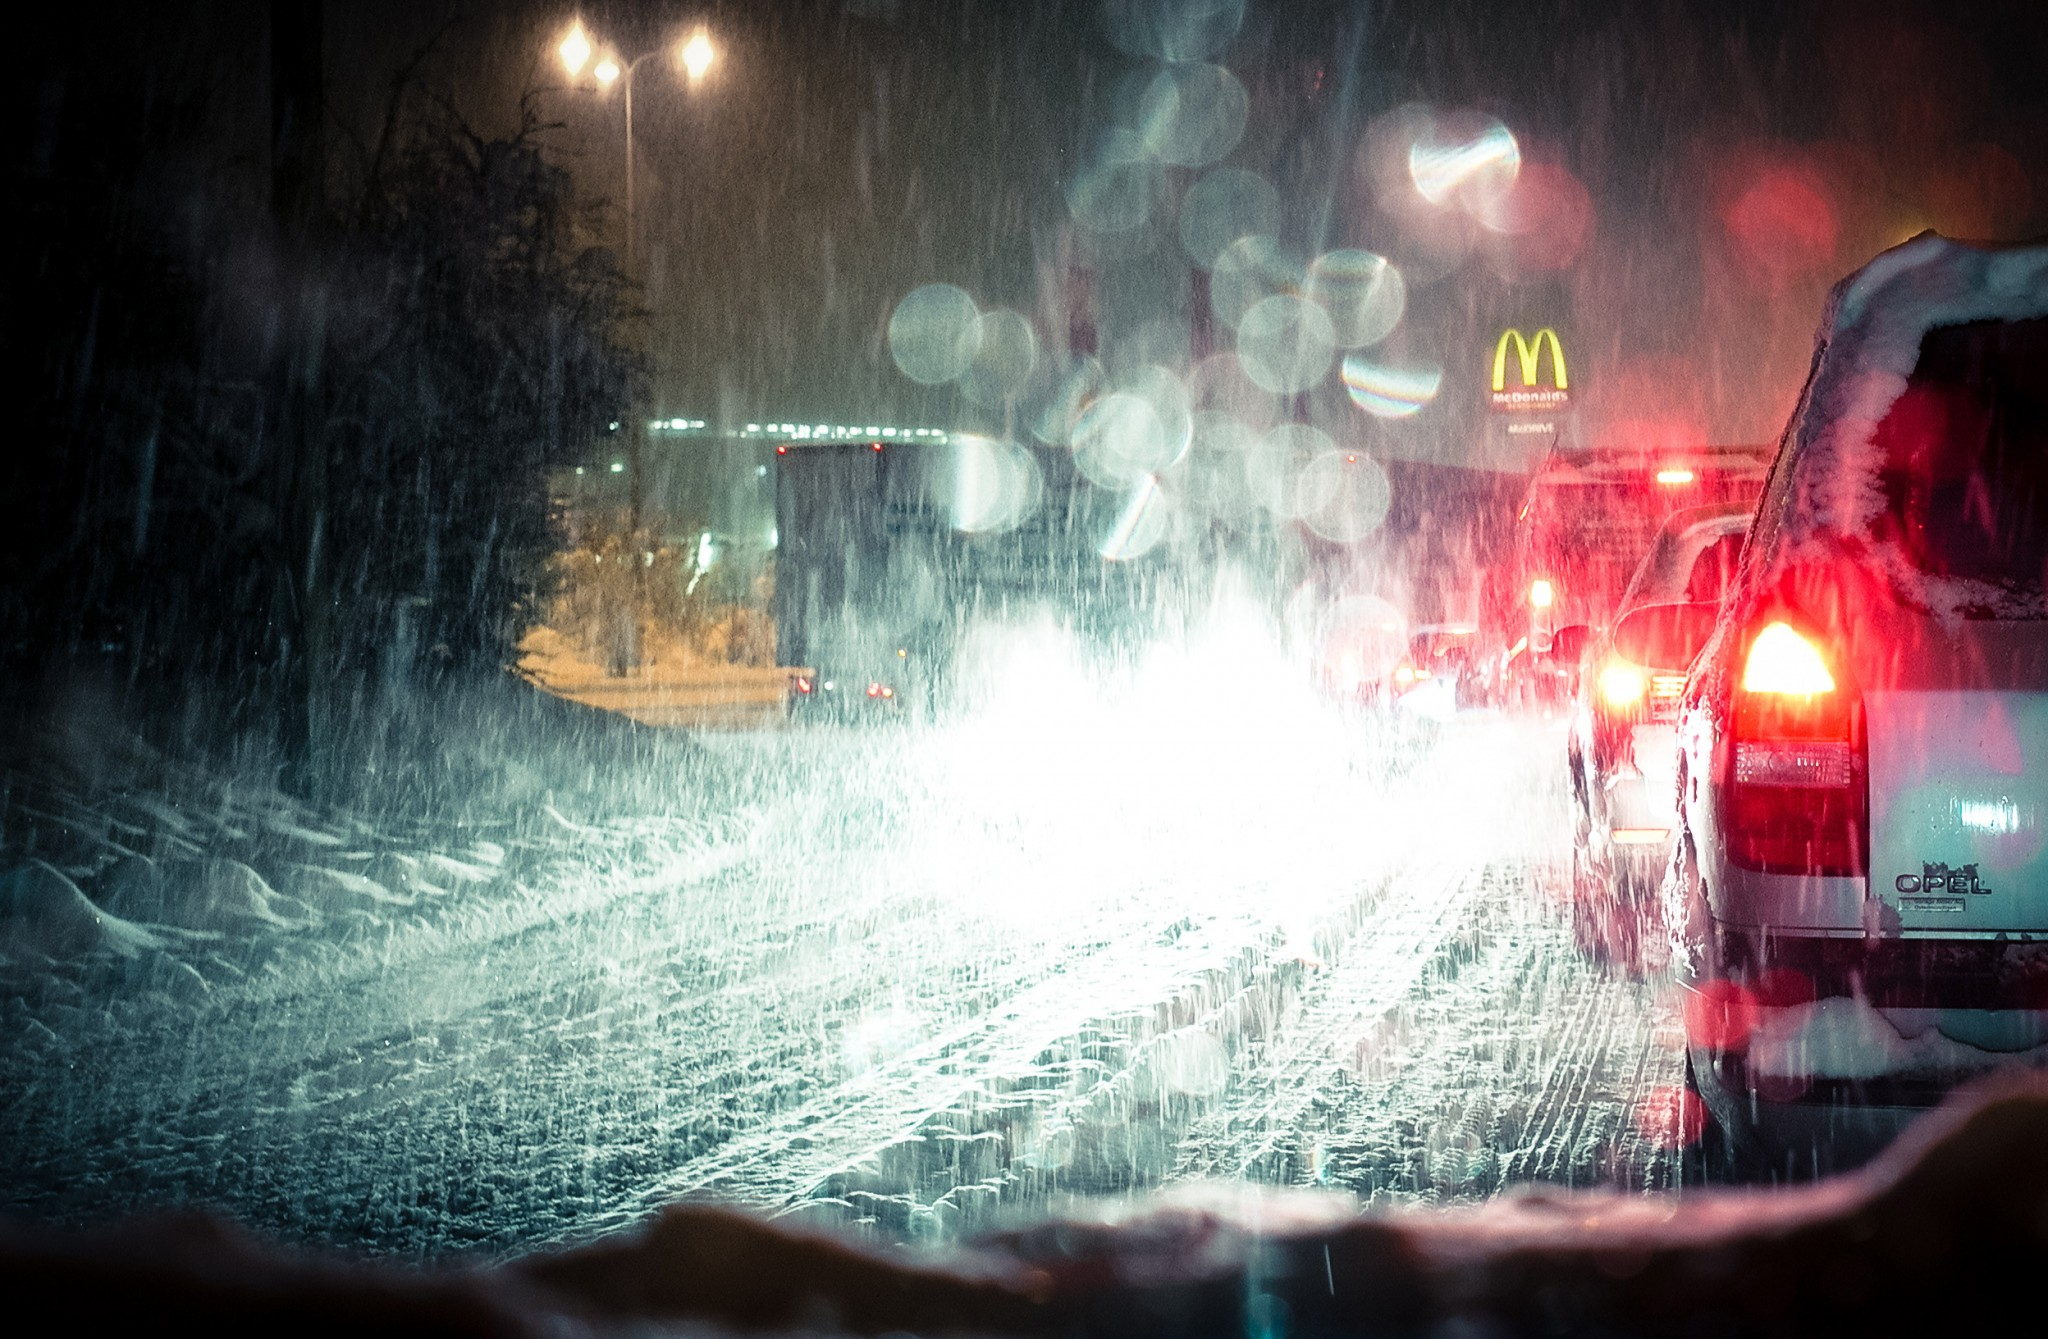 driving to mc donald's | © Olivier Villard